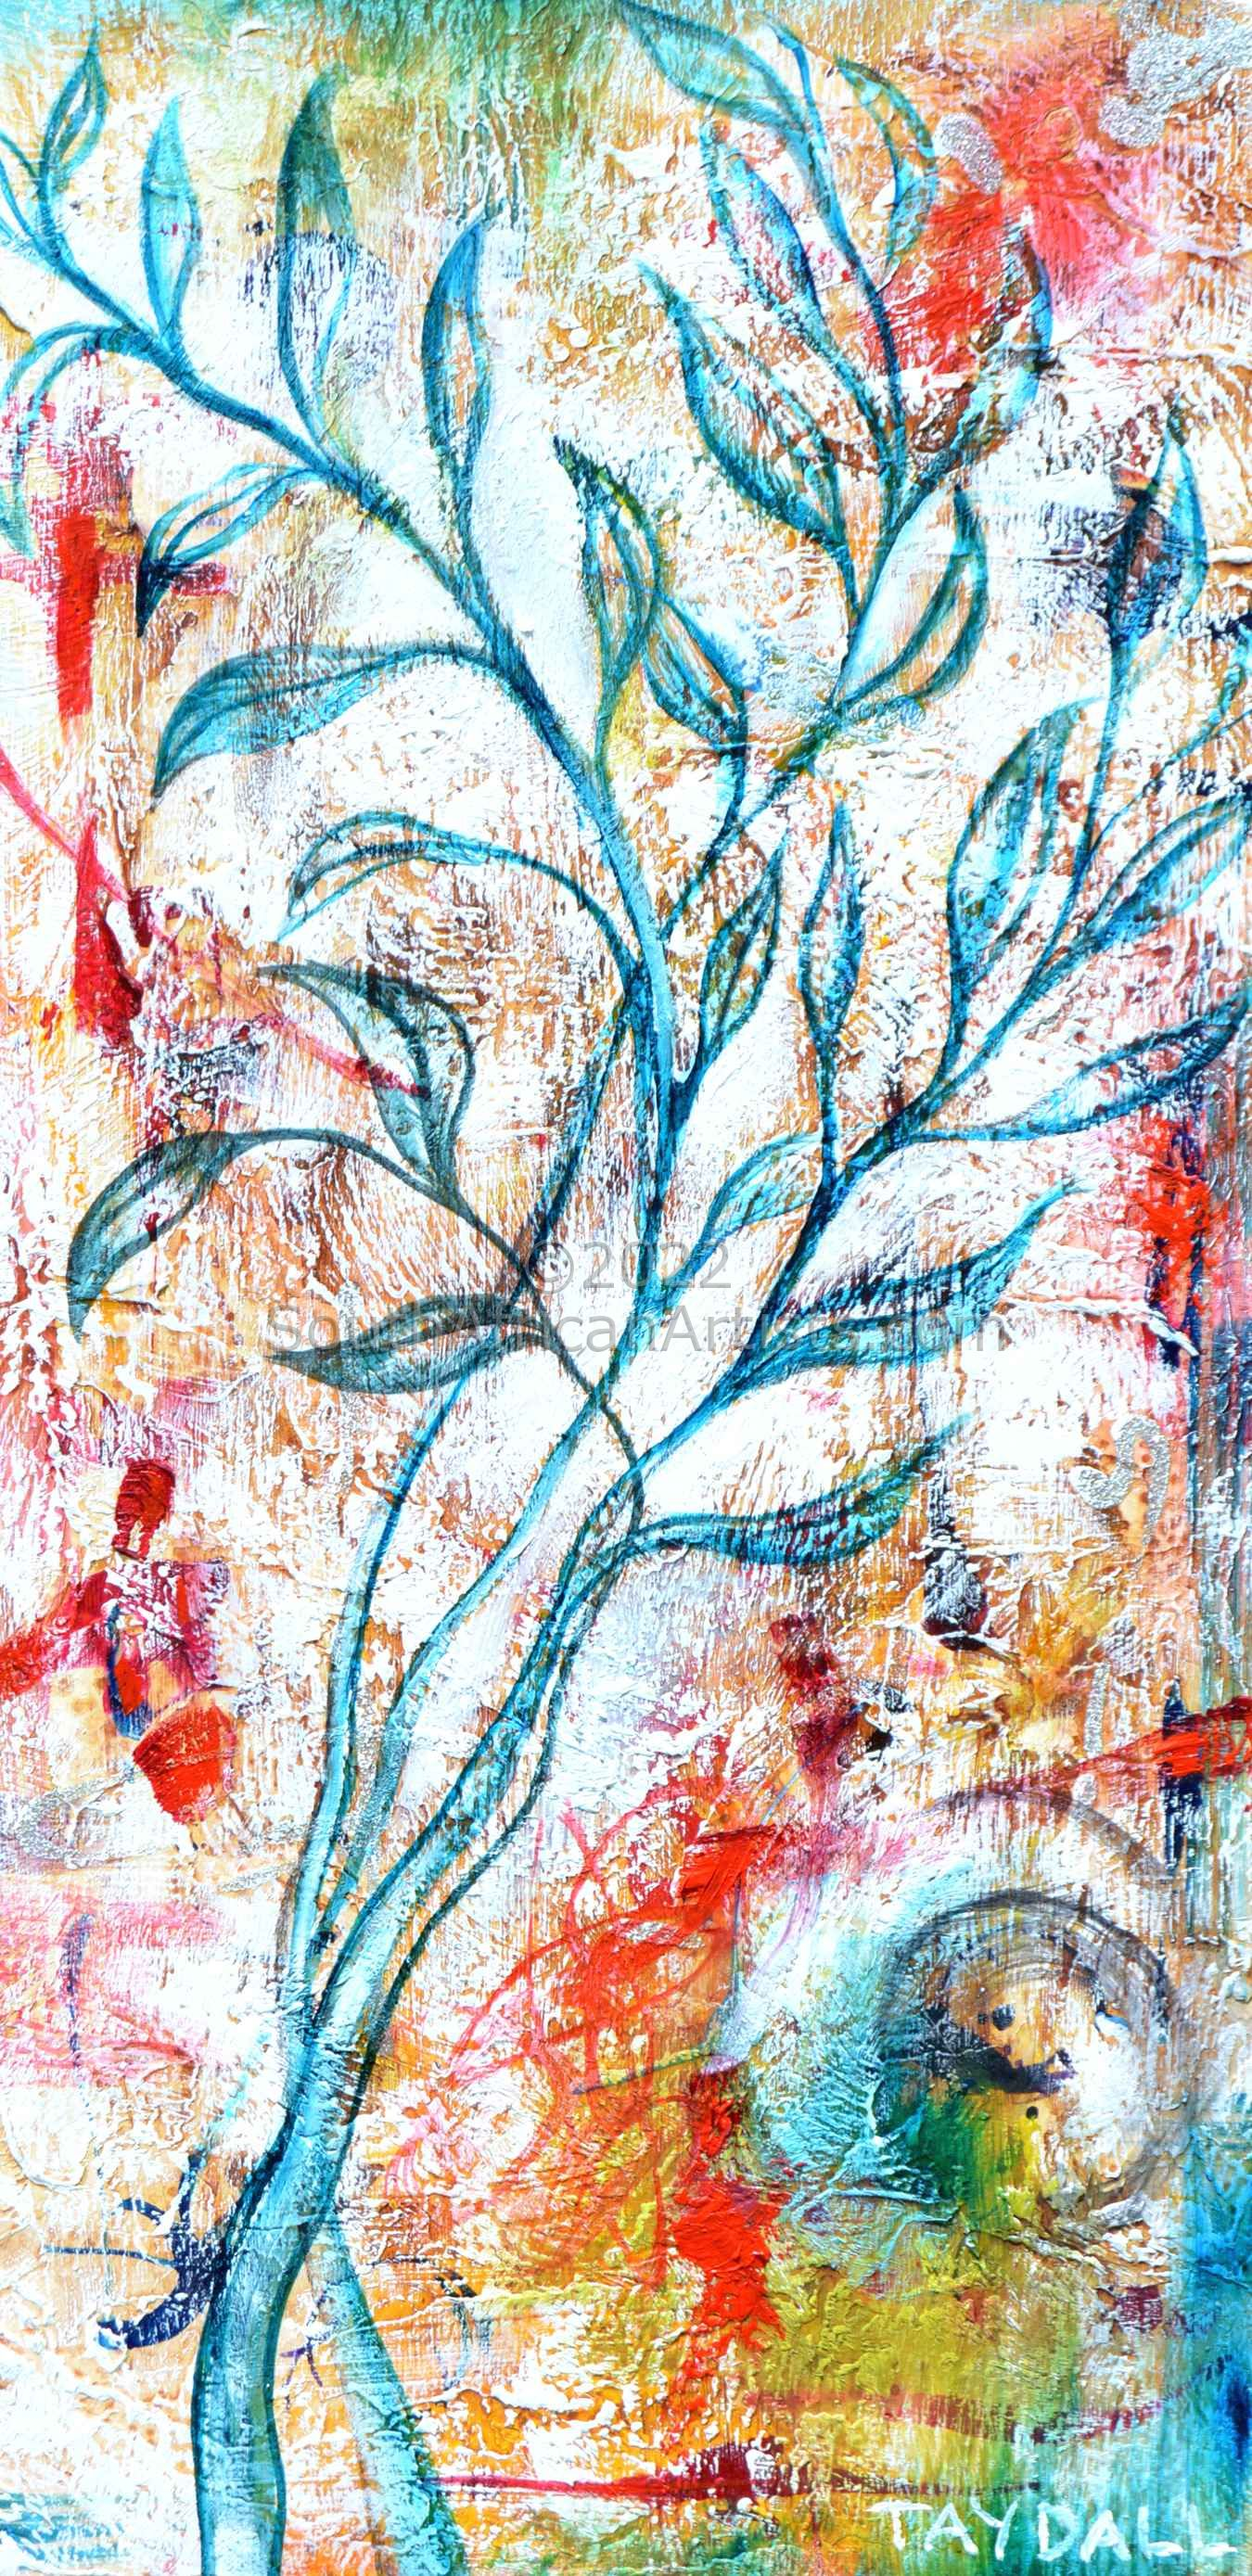 Flower Sketch on Wood 3 - 3239